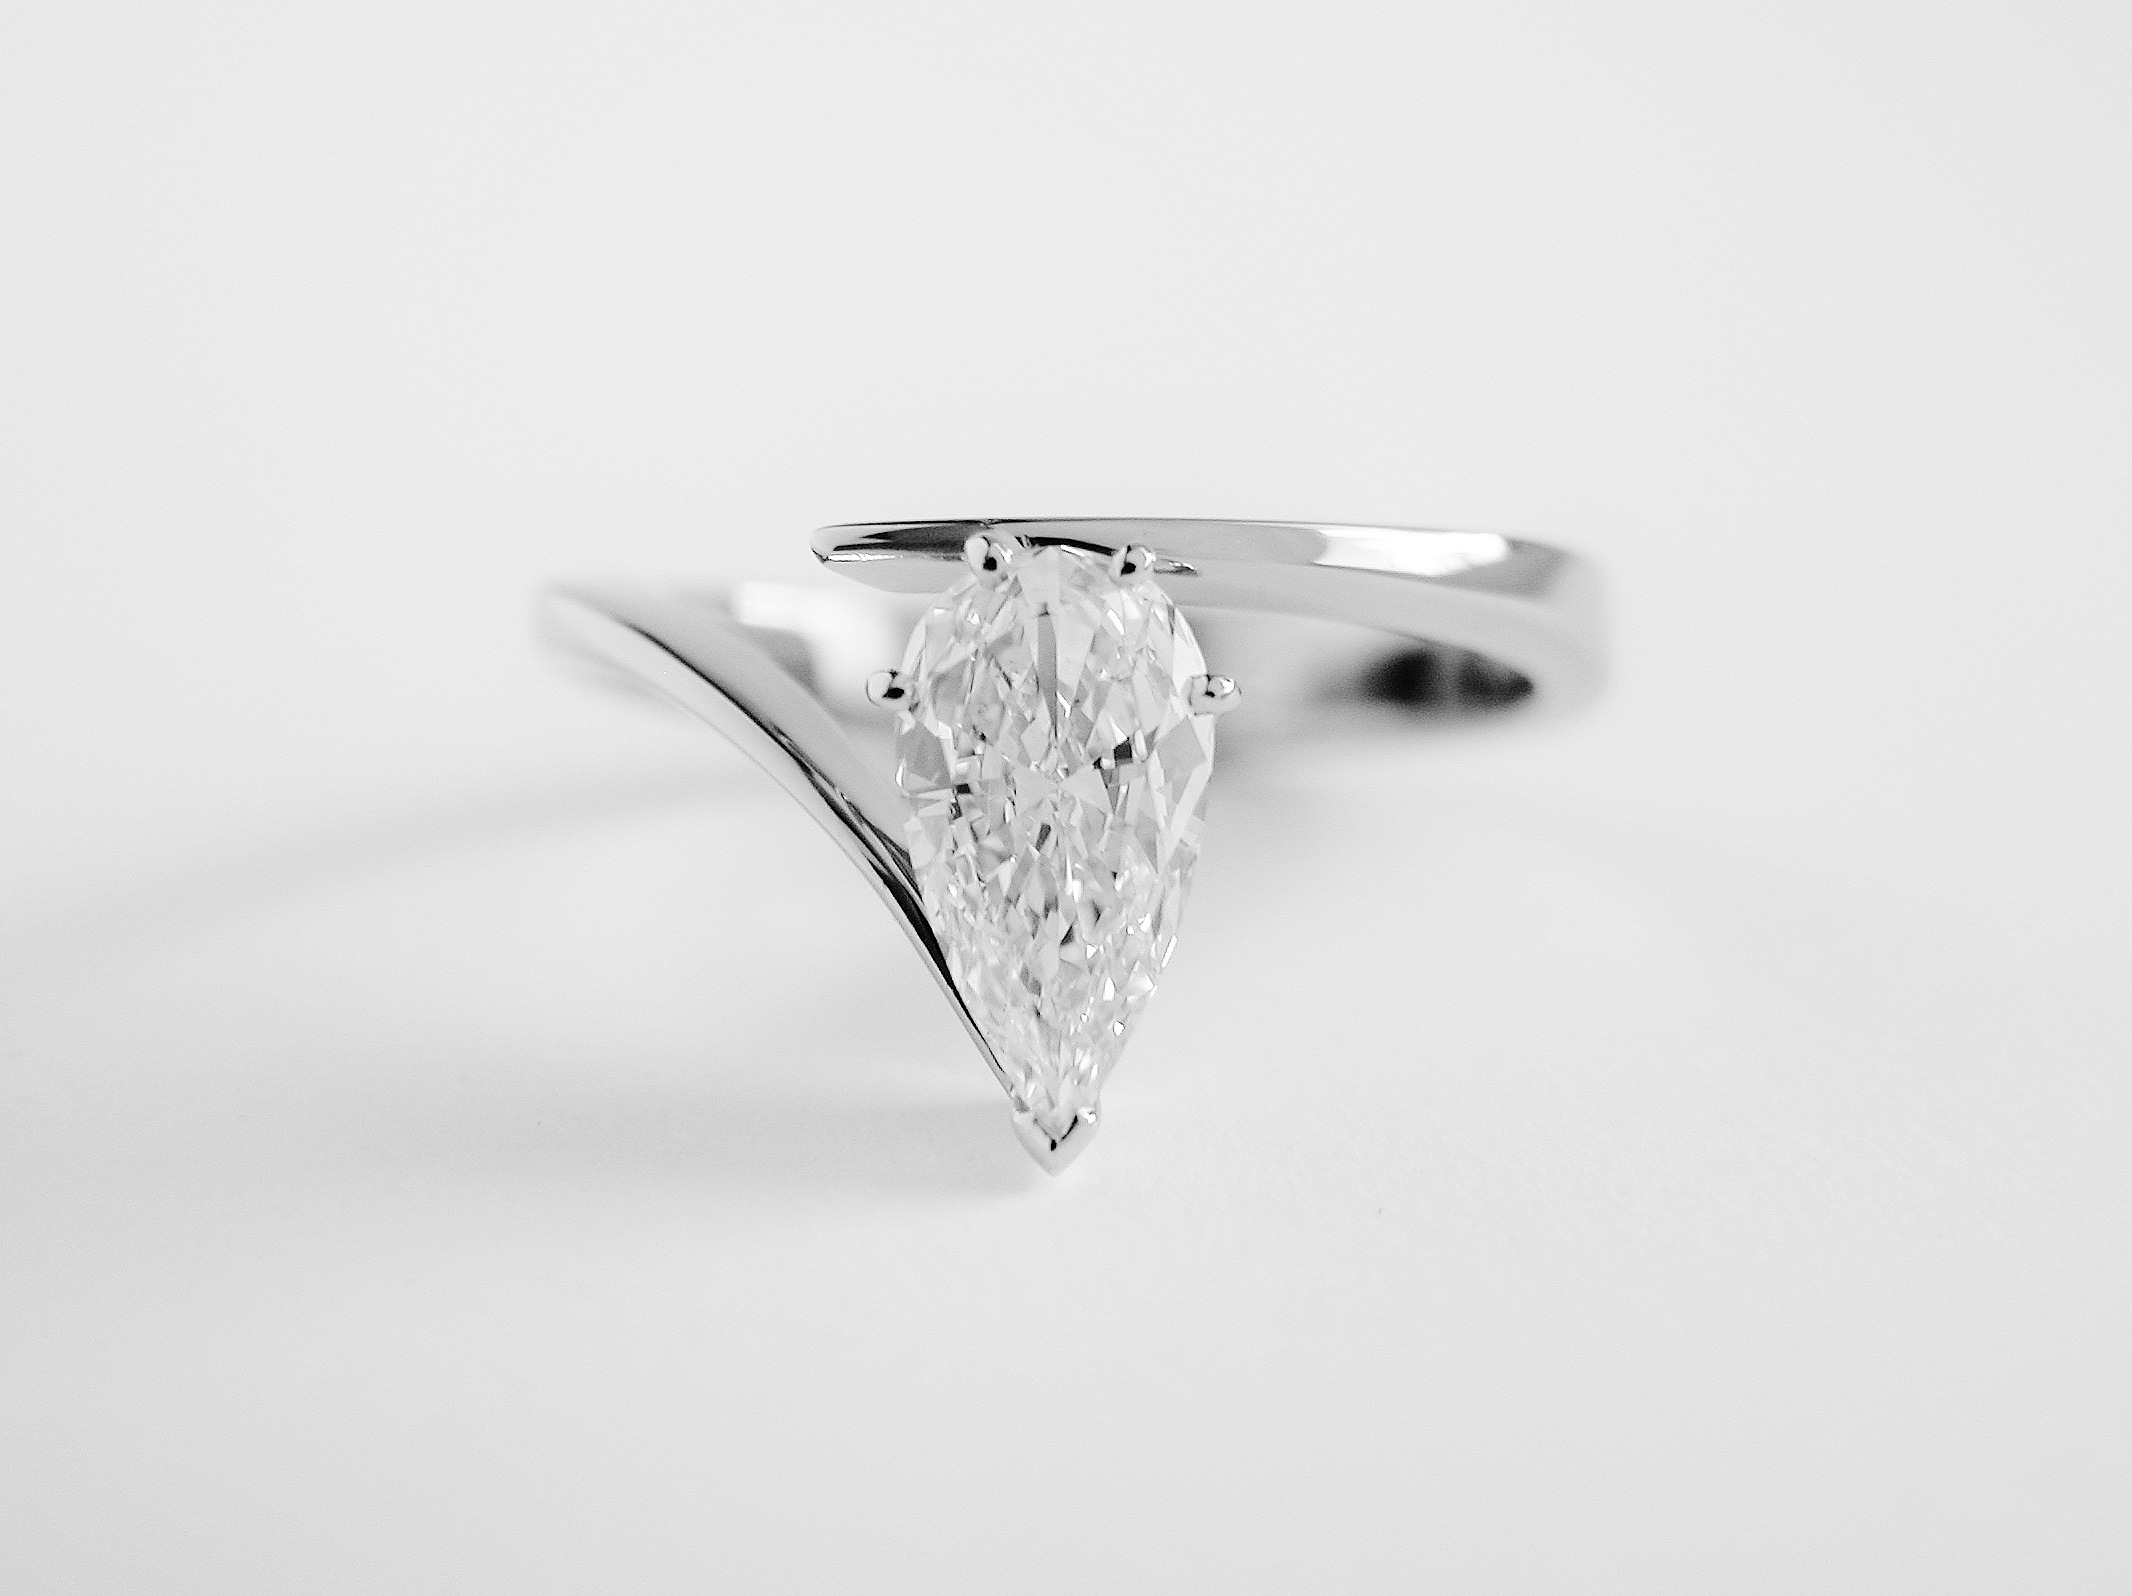 Single stone 0.74ct 'E' colour Pear shaped diamond set in a straight wishbone cross-over platinum ring mount. Ideal diamond sizes from 0.33ct to 3.00cts.